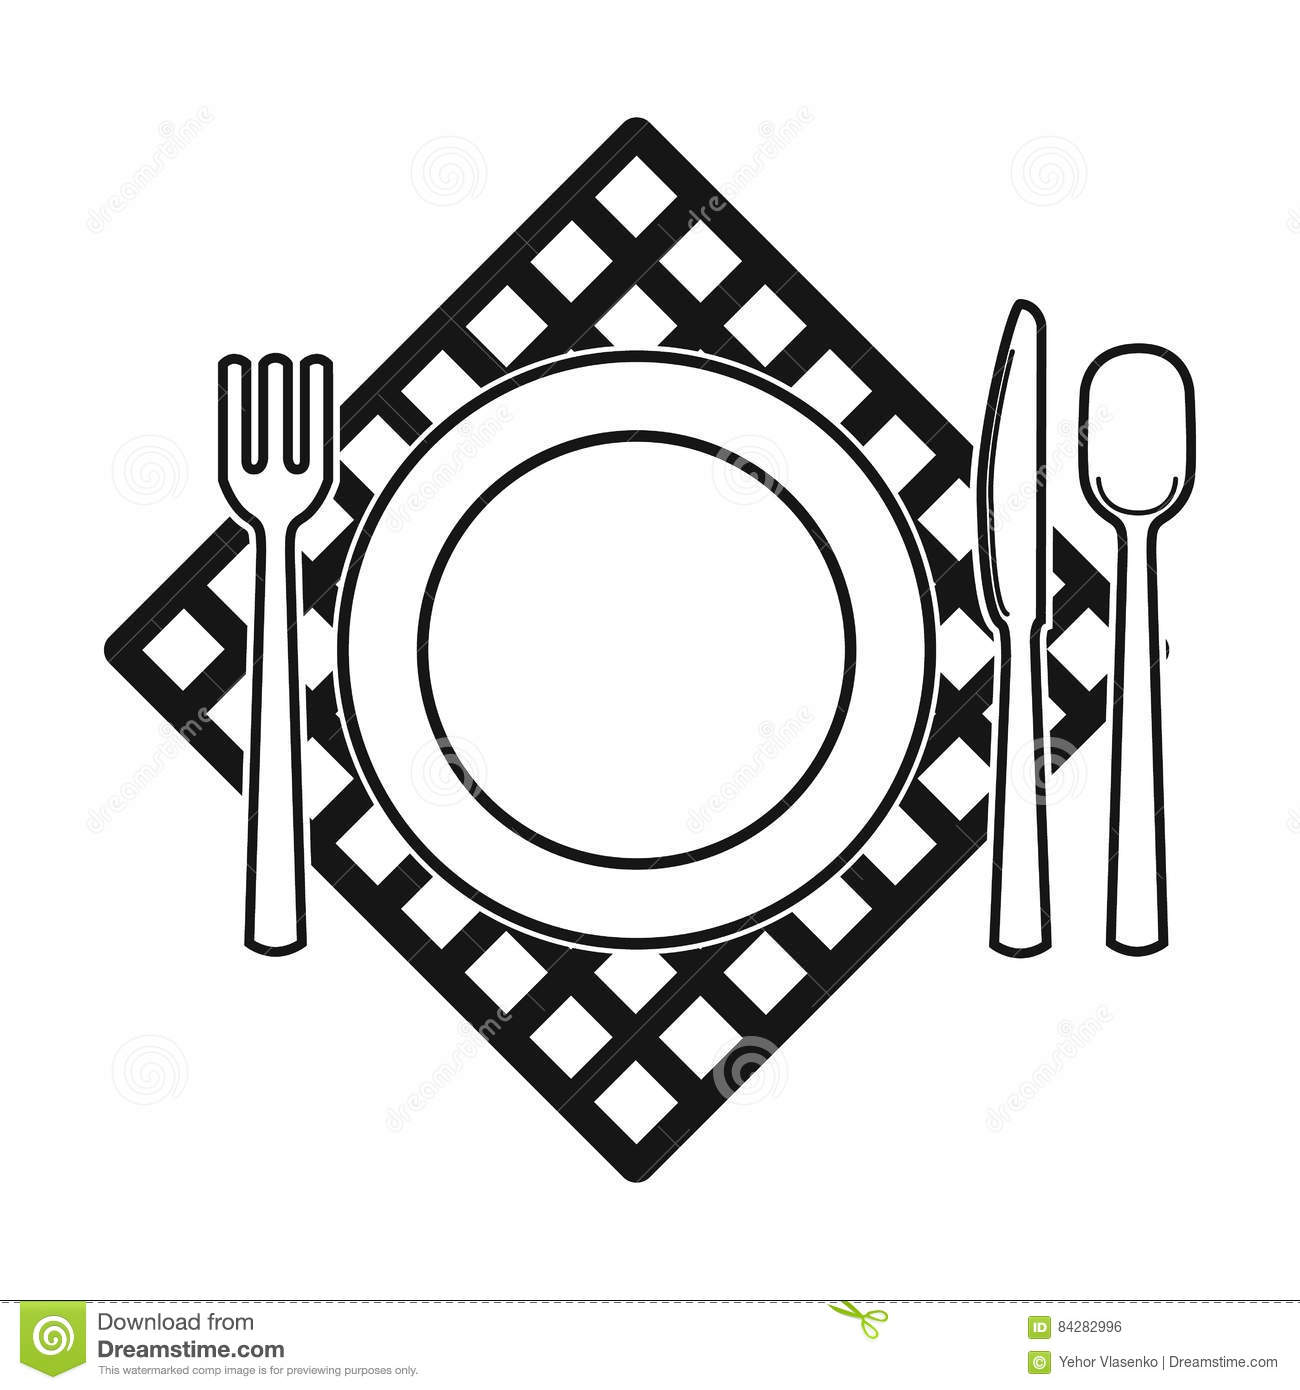 Picnic served table icon in black style isolated on white picnic served table icon in black style isolated on white background picnic symbol stock vector illustration biocorpaavc